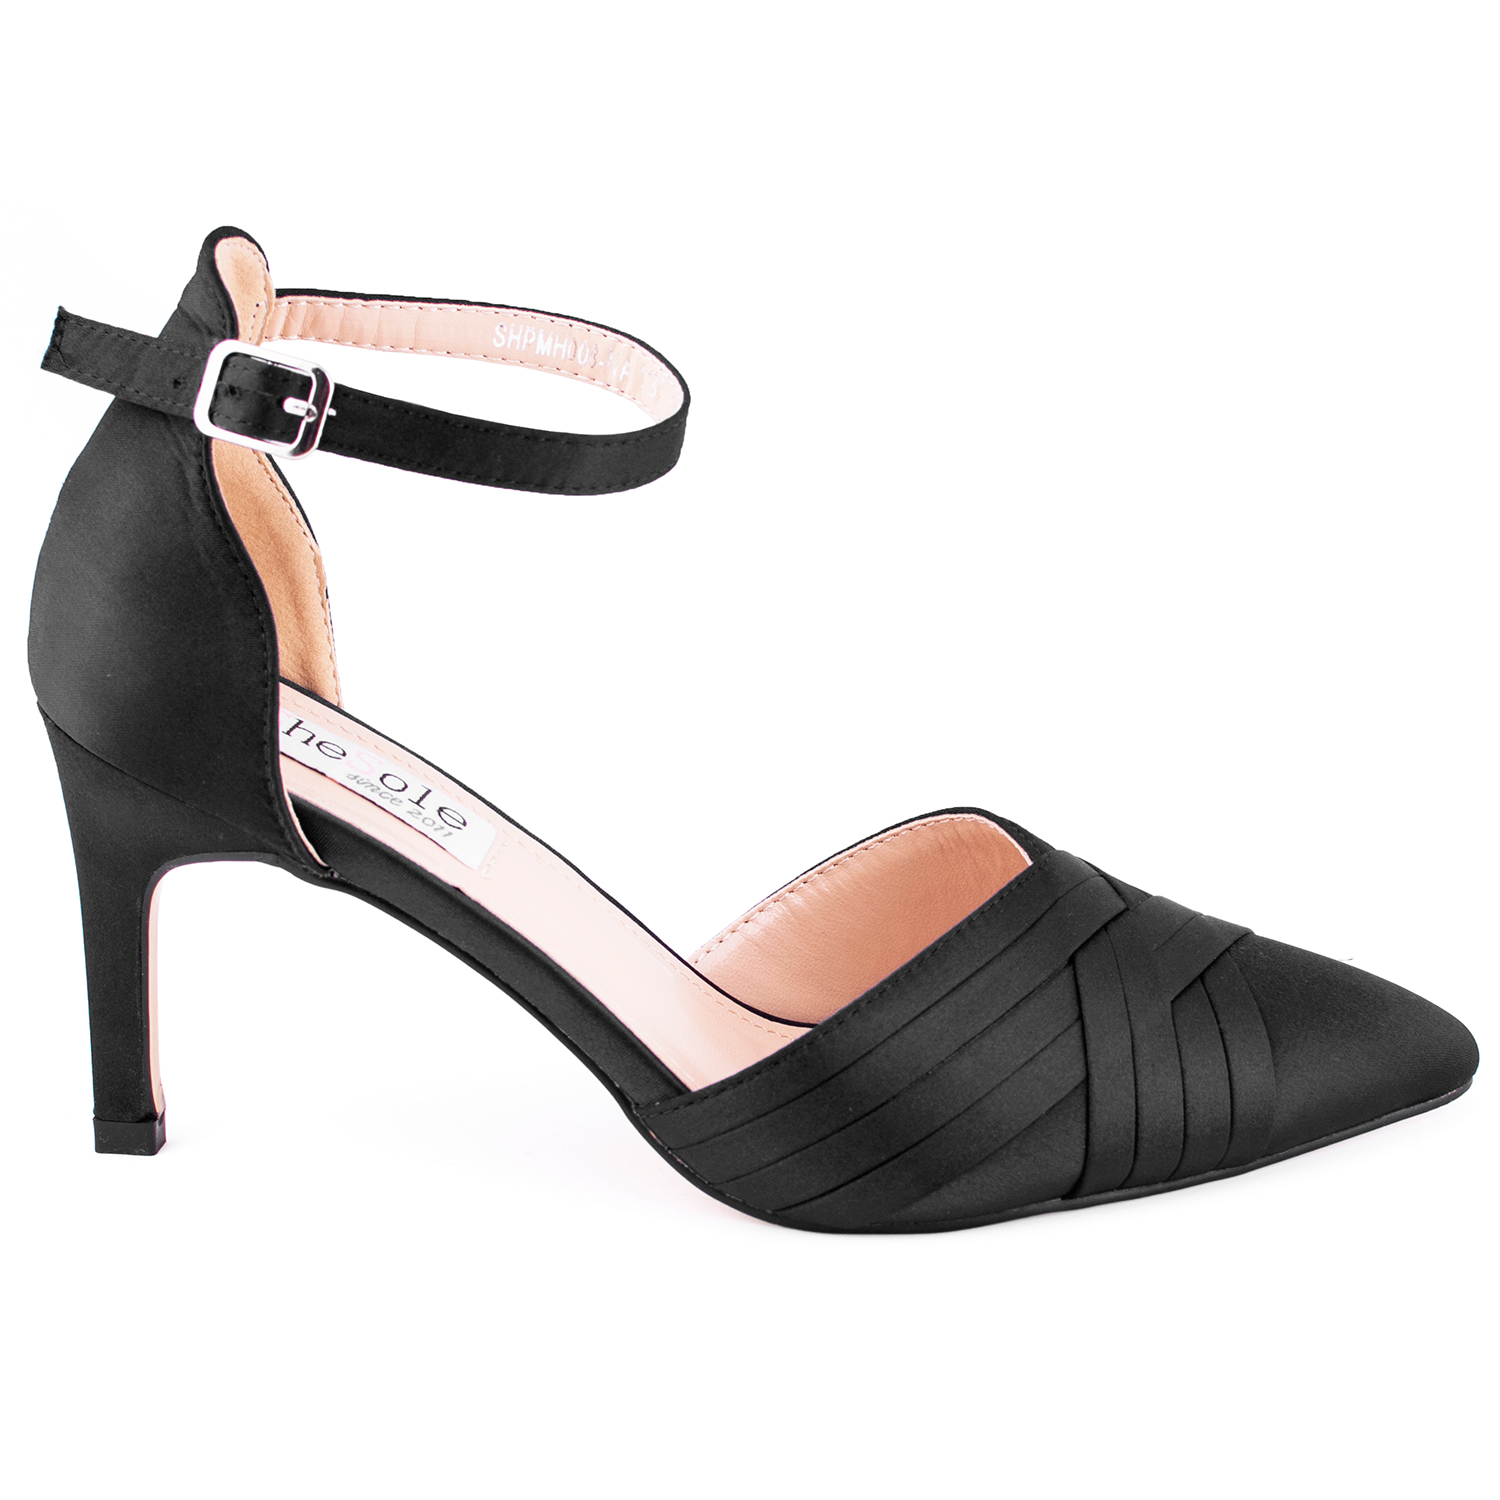 Womens-Stiletto-High-Heels-Pointed-Pumps-Ankle-Strap-Party-Prom-Work-Court-Shoes thumbnail 7